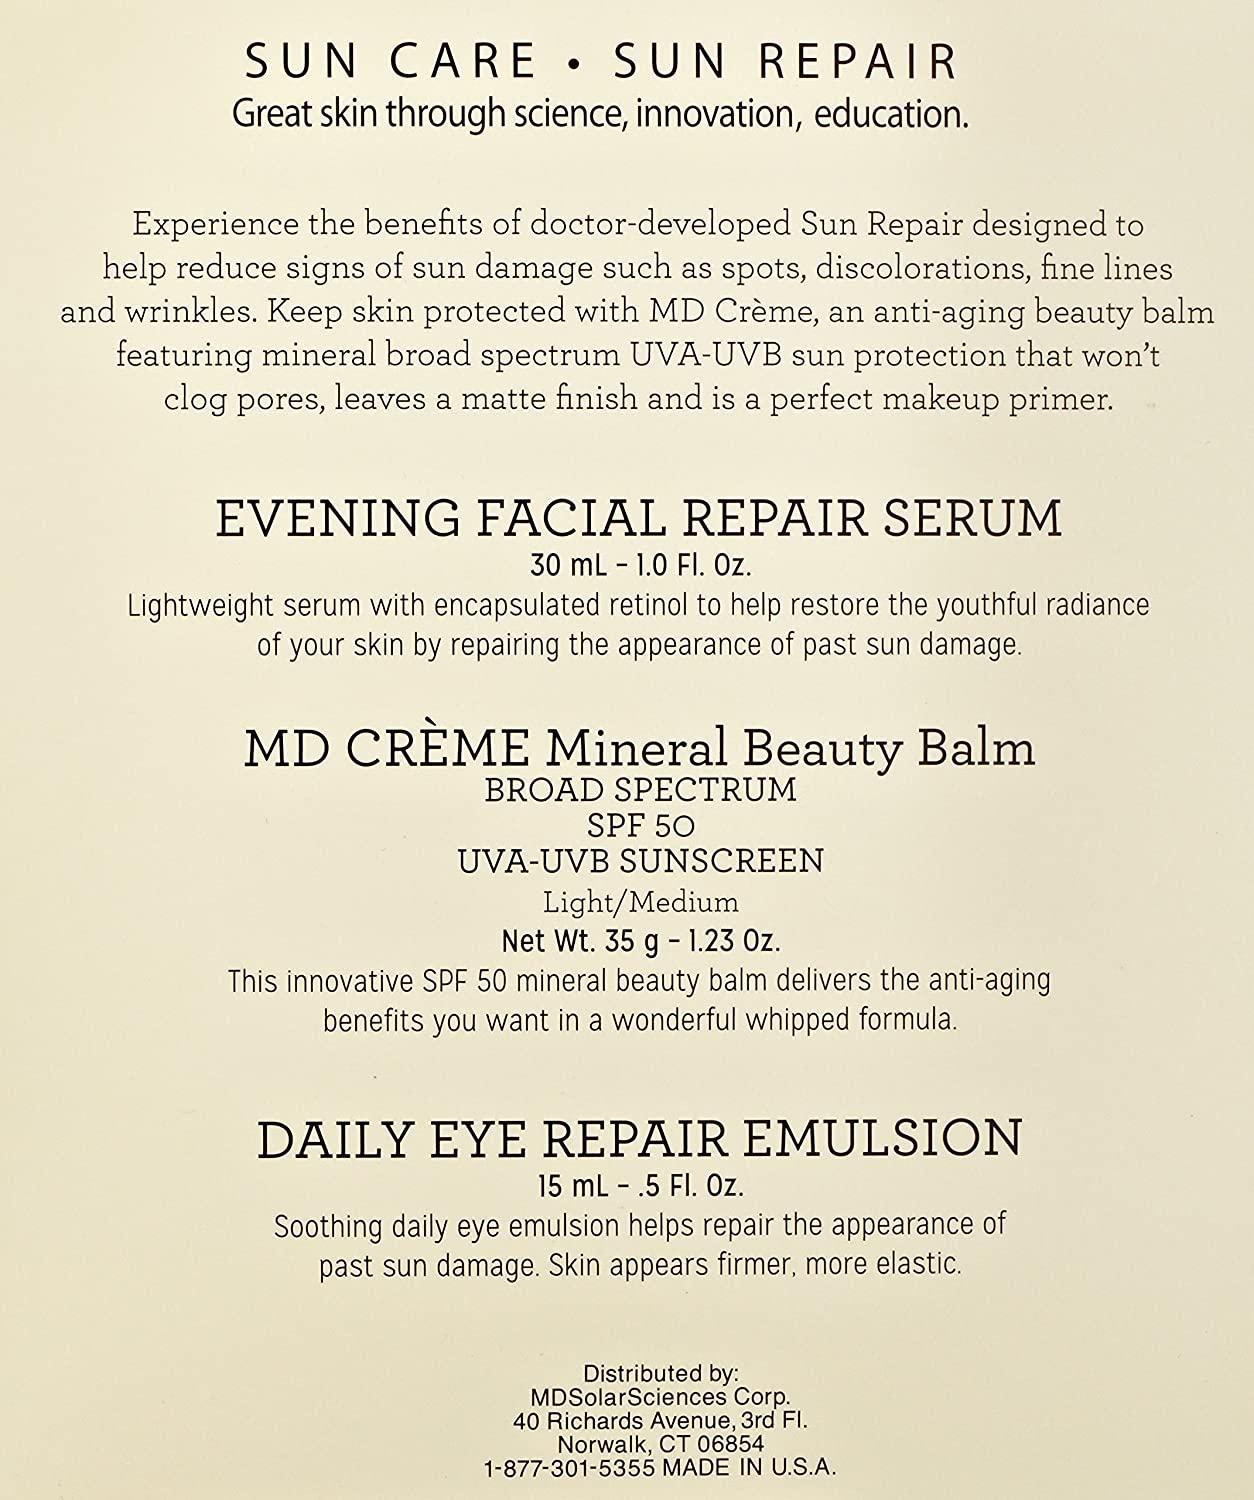 Md Creme Mineral Beauty Balm by mdsolarsciences #17